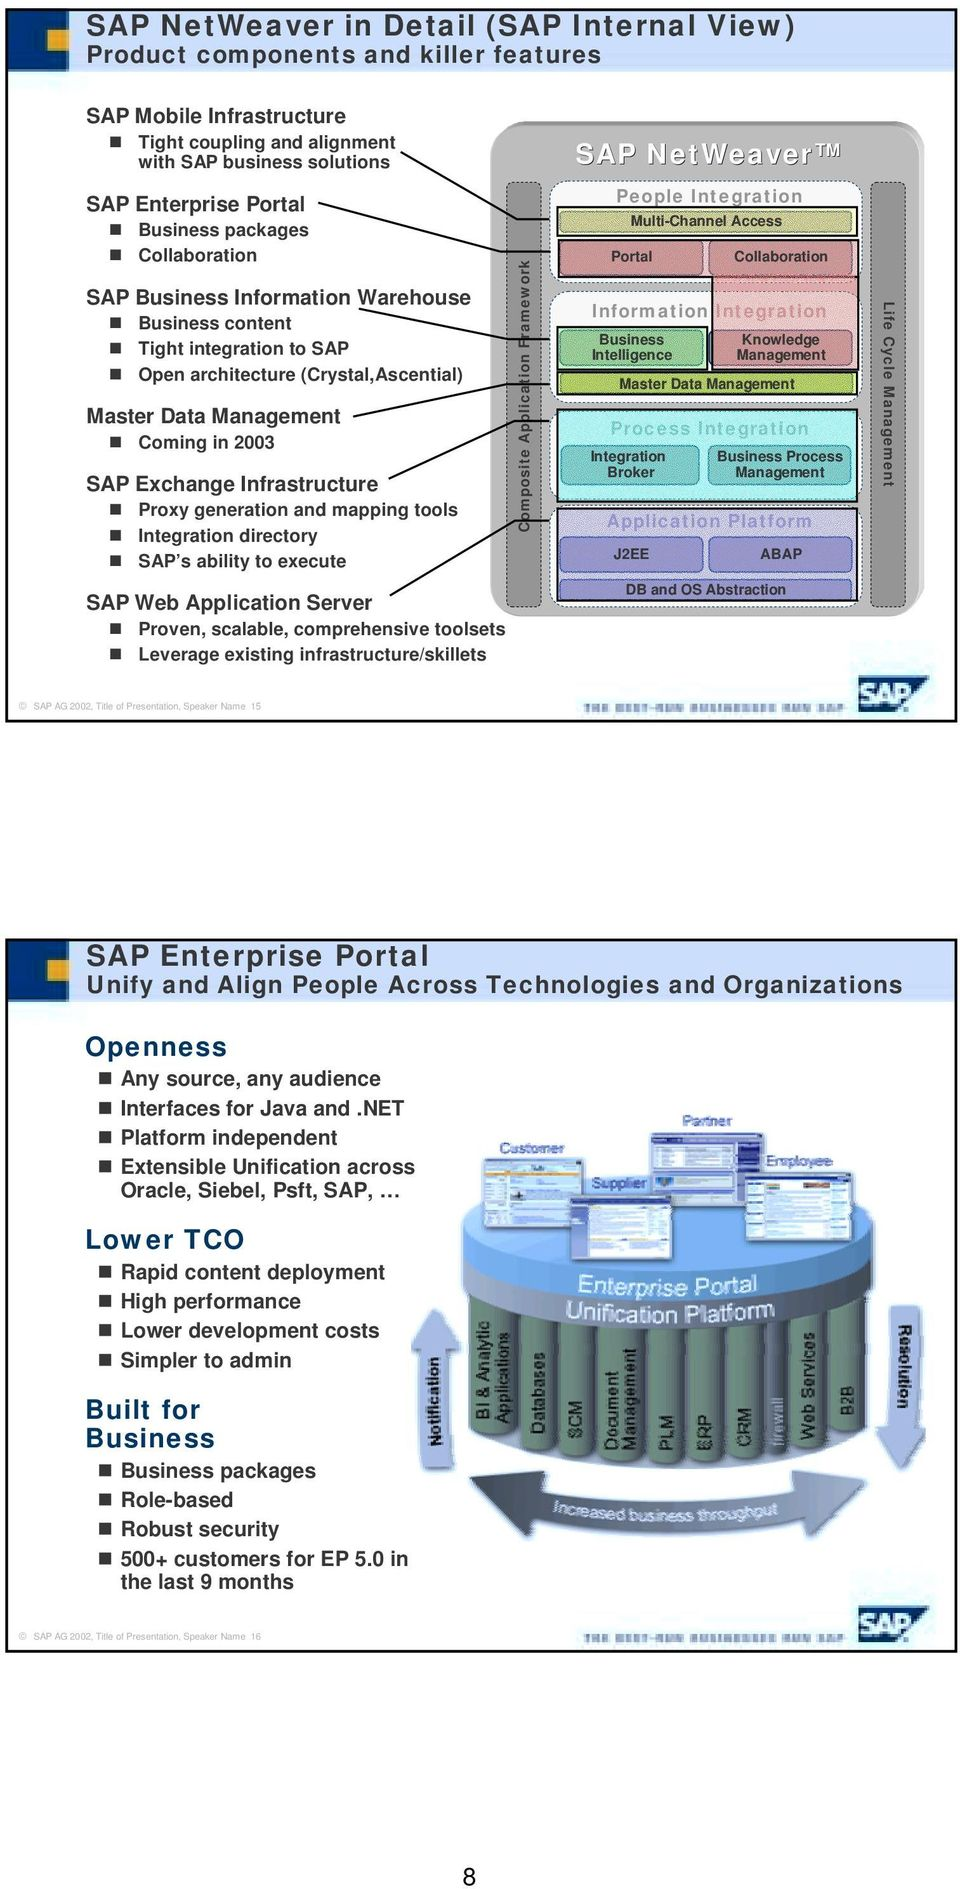 Exchange Infrastructure # Proxy generation and mapping tools # directory # SAP s ability to execute SAP Web Application Server # Proven, scalable, comprehensive toolsets # Leverage existing